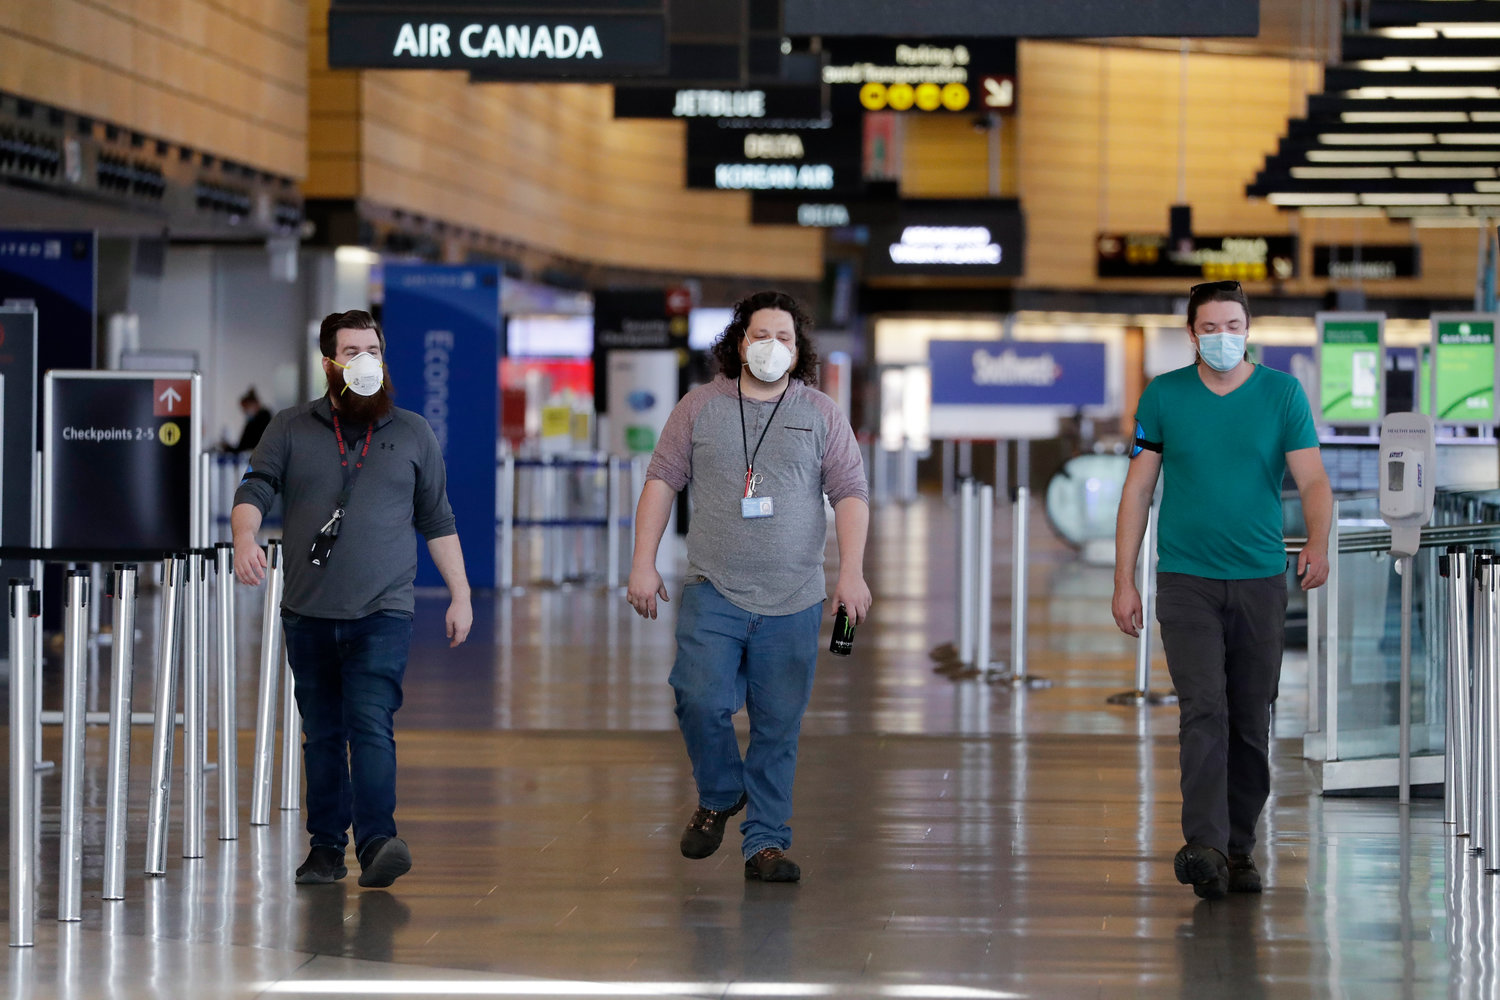 In this photo taken May 18, 2020, workers wear masks on the first day they are required there at Seattle Tacoma International Airport, in SeaTac, Washington.